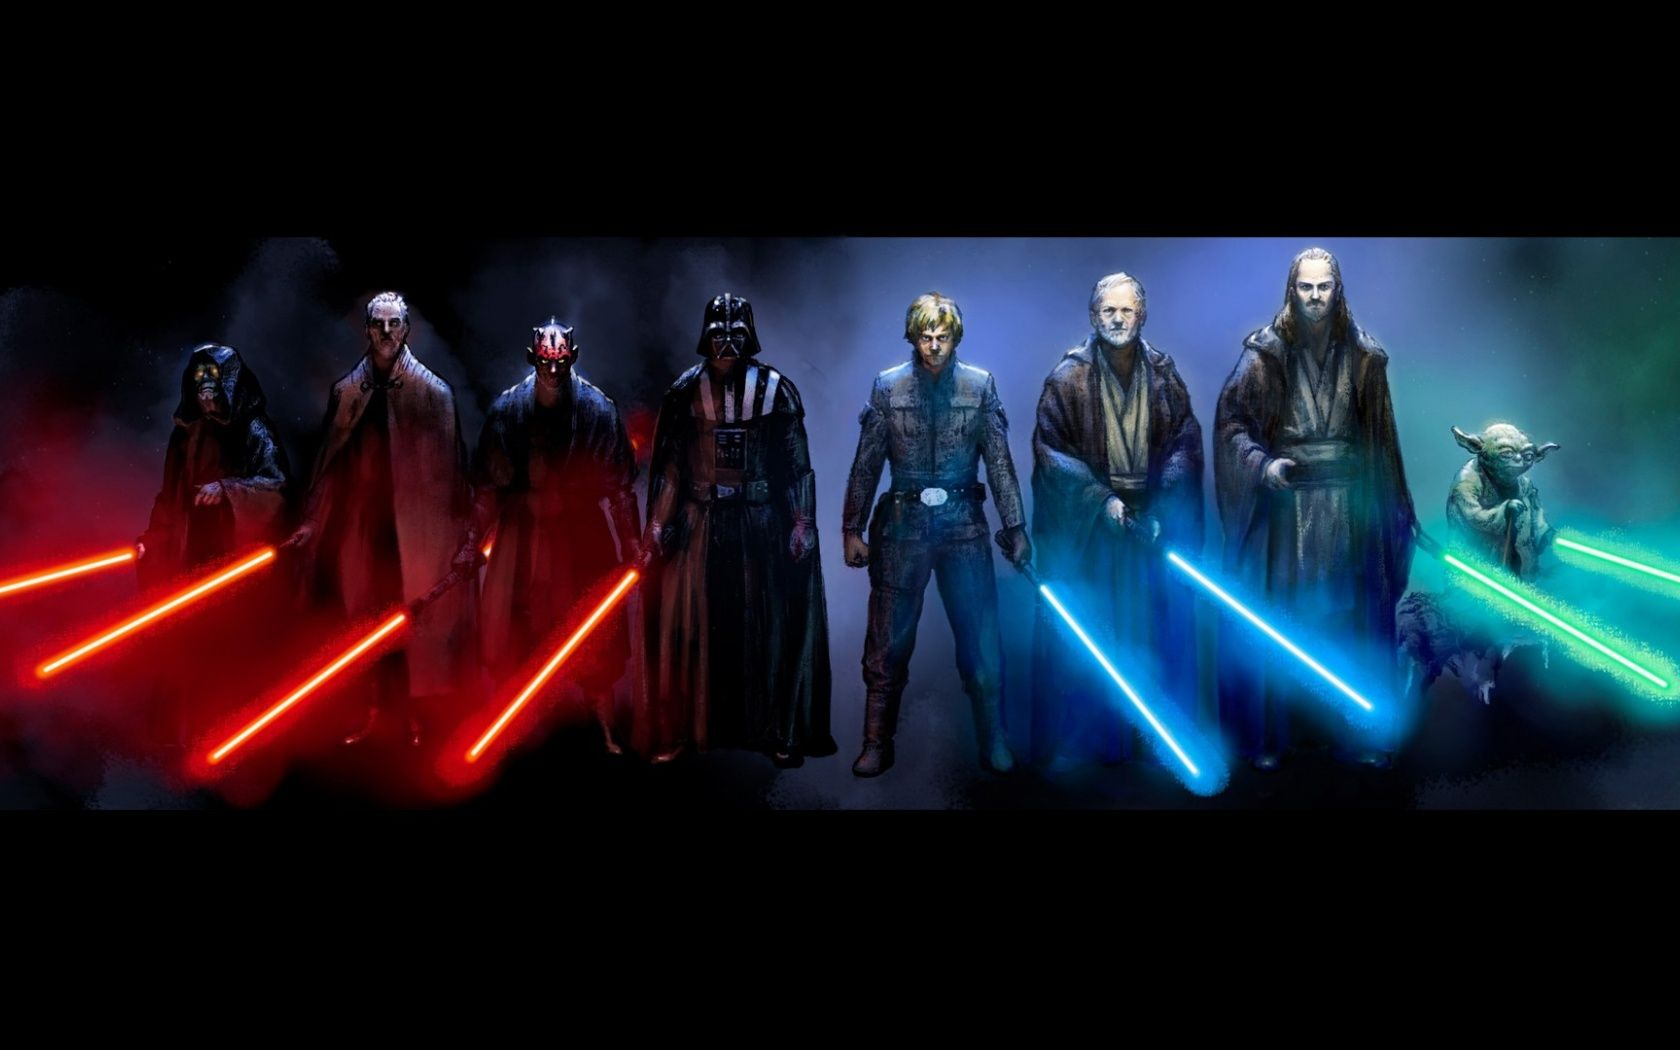 1680x1050 Star Wars Sith And Jedi Desktop Pc And Mac Wallpaper Star Wars Images Star Wars Pictures Star Wars Sith